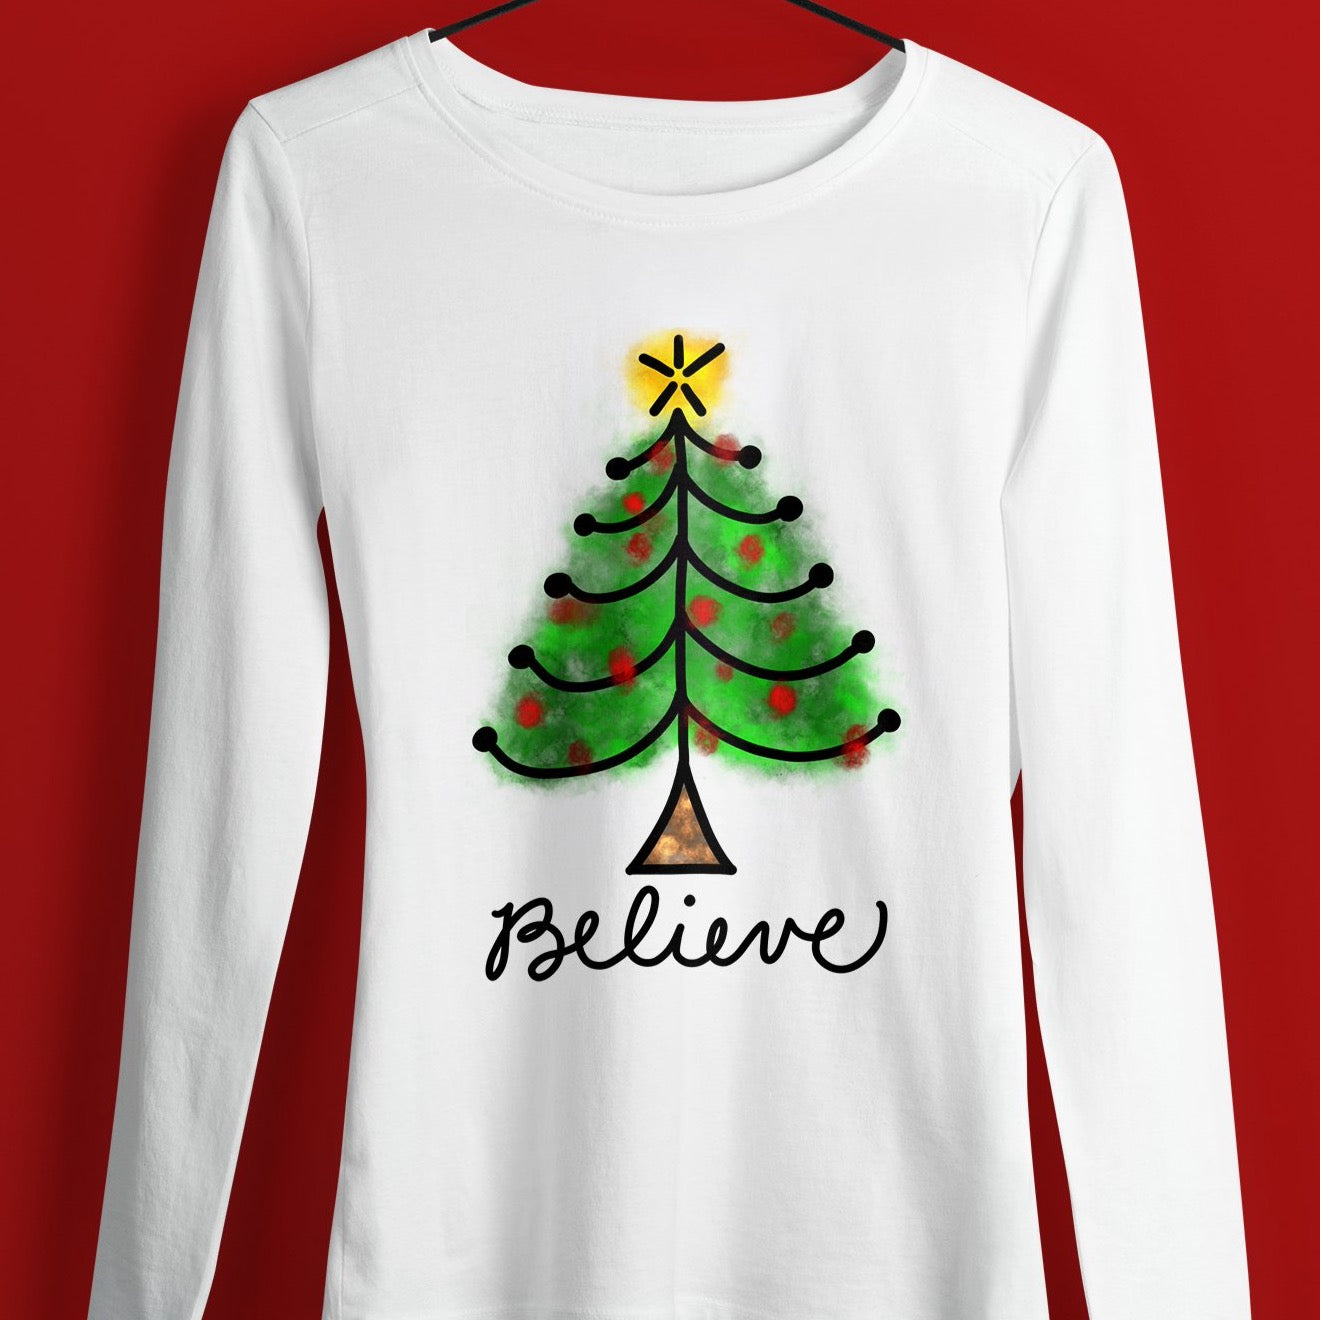 Christmas Shirt Sublimation Design, Christmas Sublimation Digital Download, Sublimation Christmas Tree Design, Christmas Tree Sublimation Download